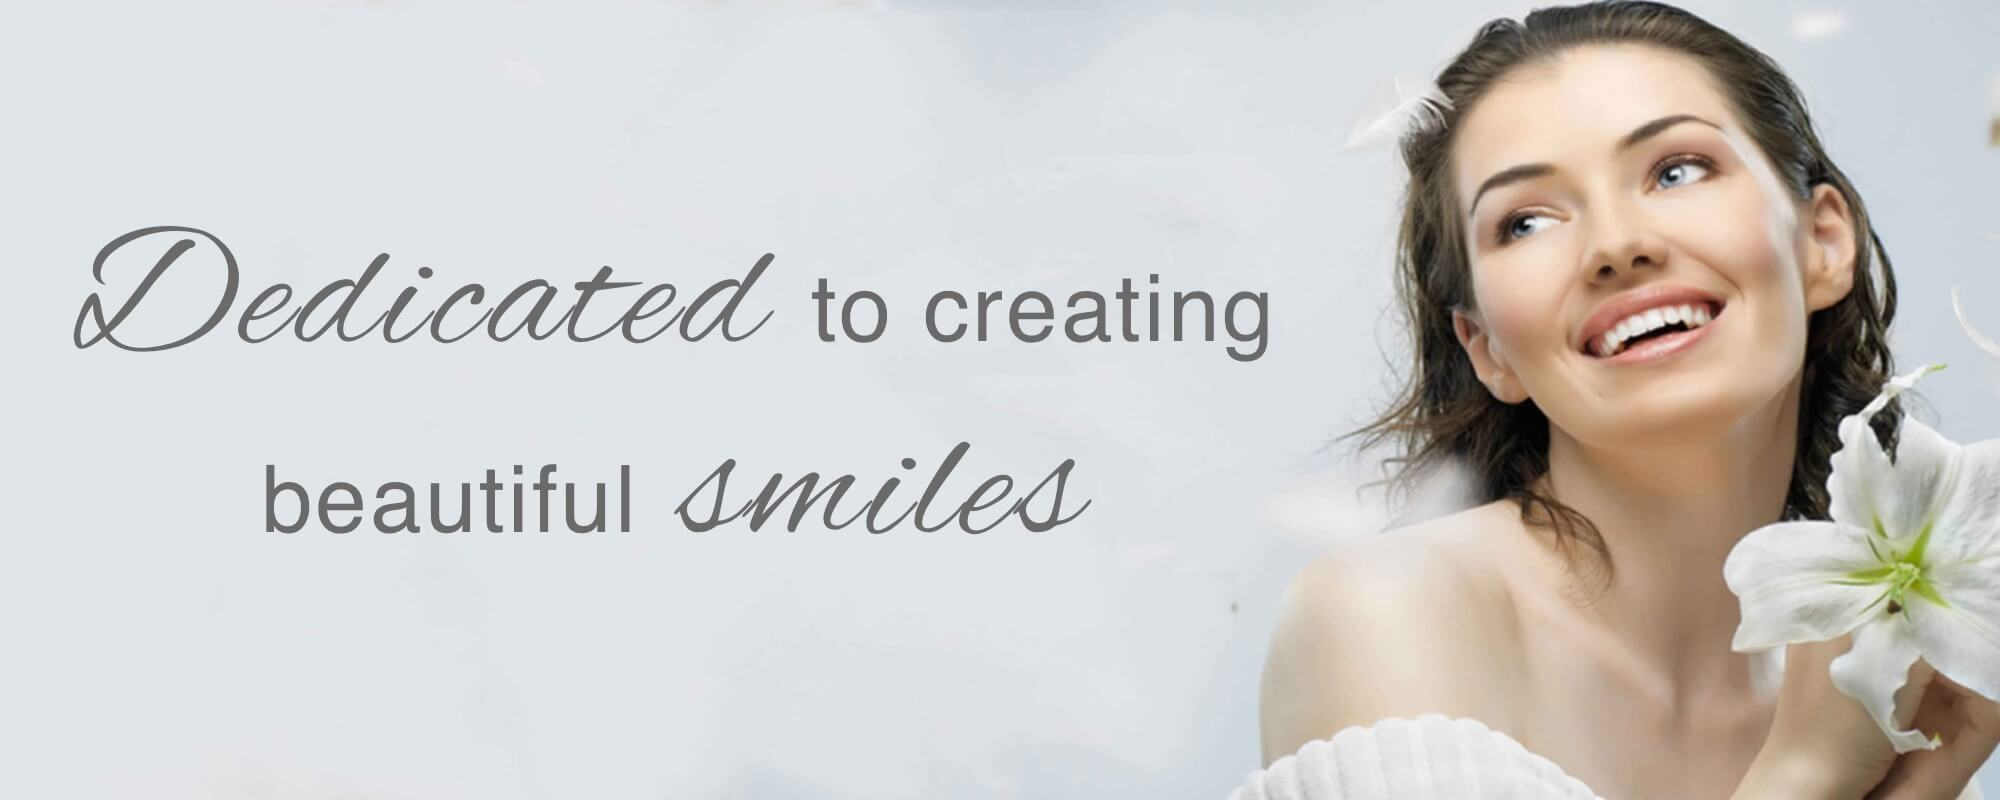 Dedicated to creating beautiful smiles